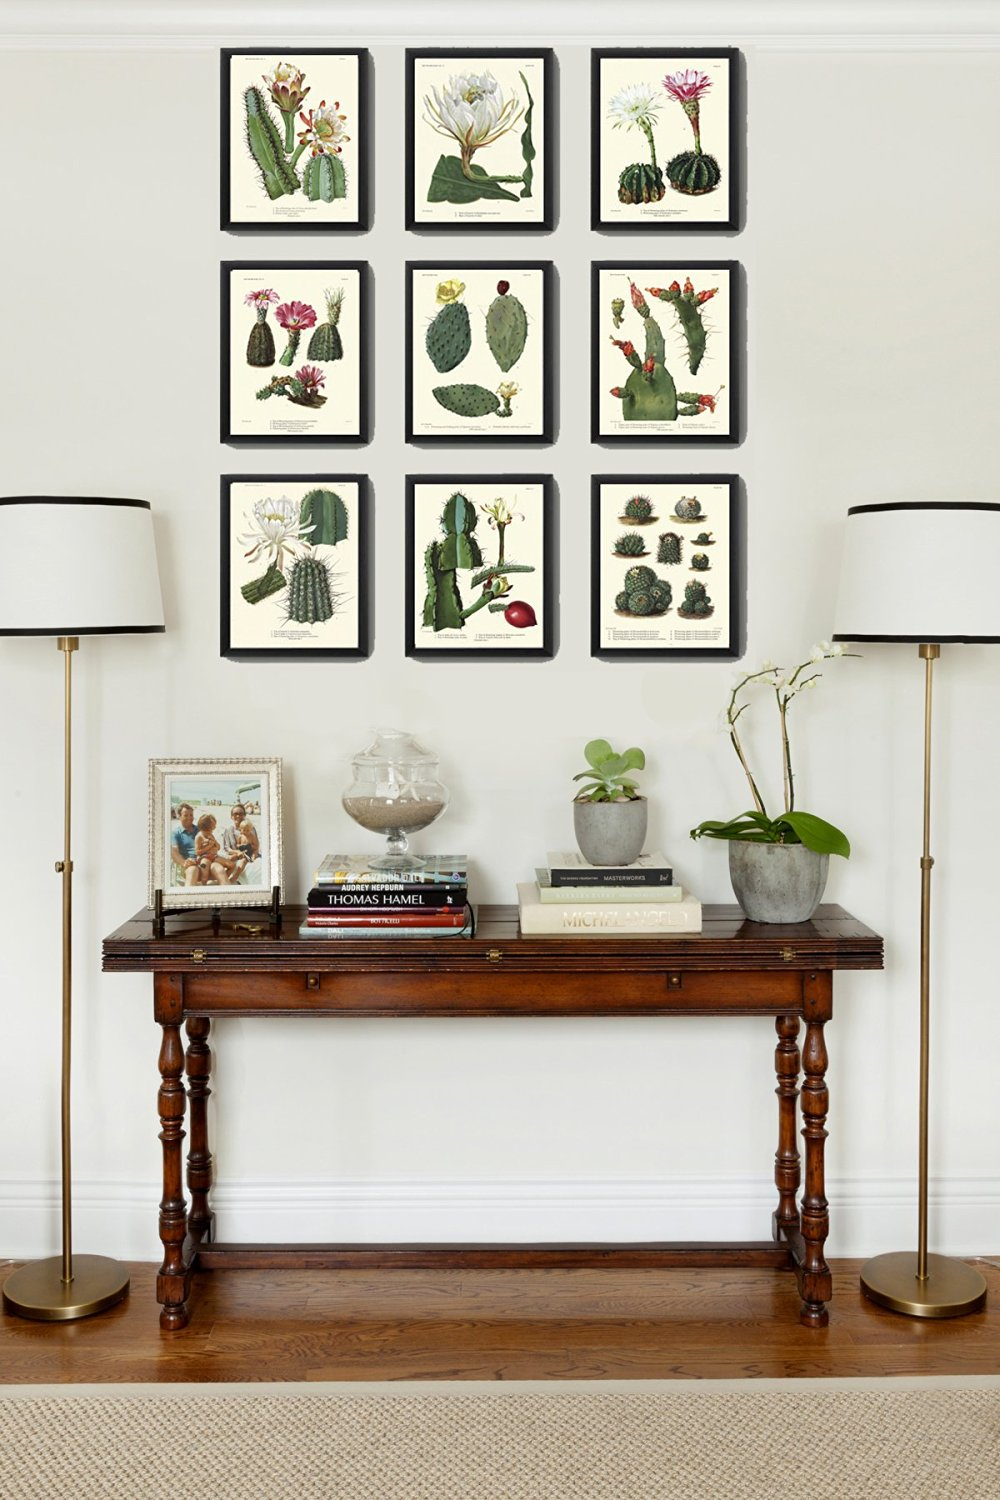 Botanical vintage illustrations